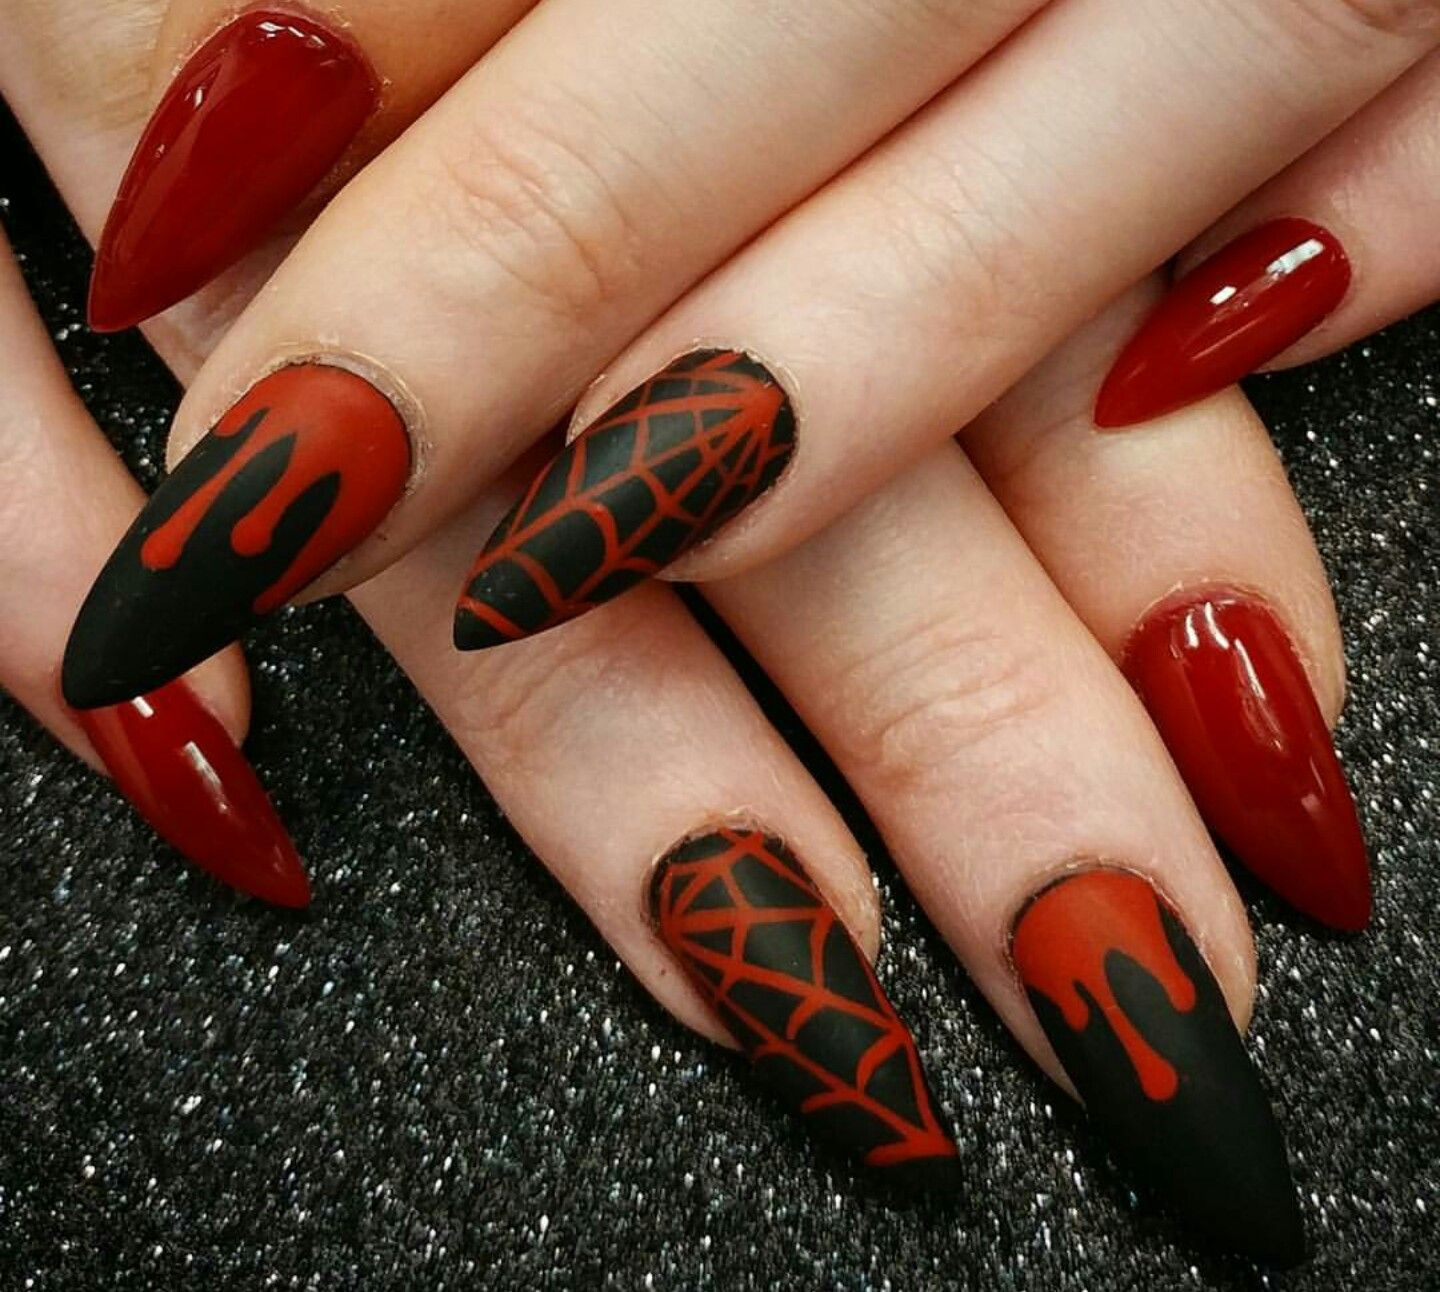 Beauty nails - Pin By DIY Nail Art On Nail Art Ideas Pinterest Gothic